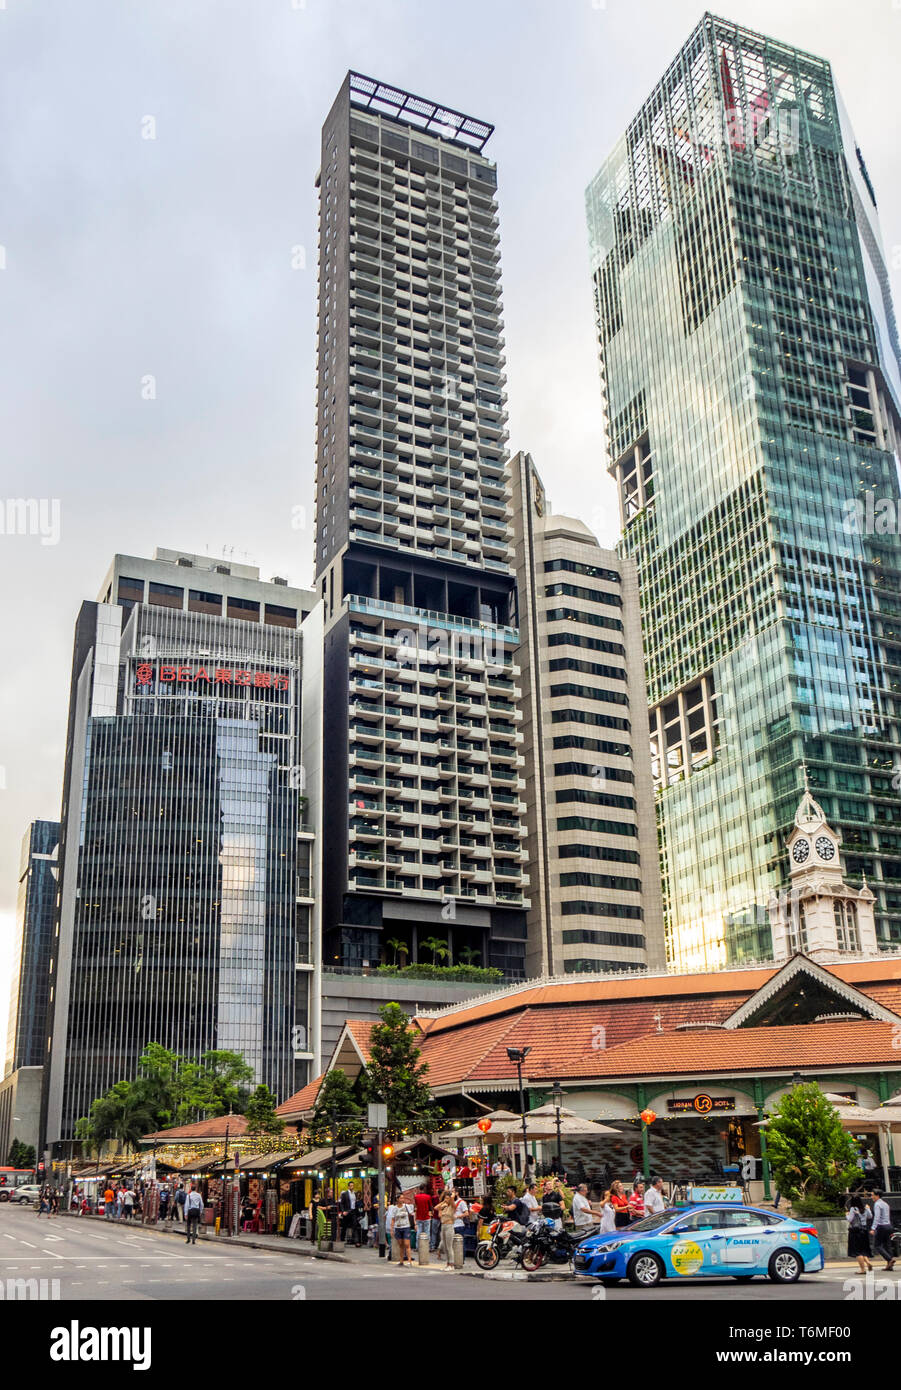 Office and residential towers skyscrapers towering over Lau Pa Sat hawker food markets in downtown Singapore. - Stock Image